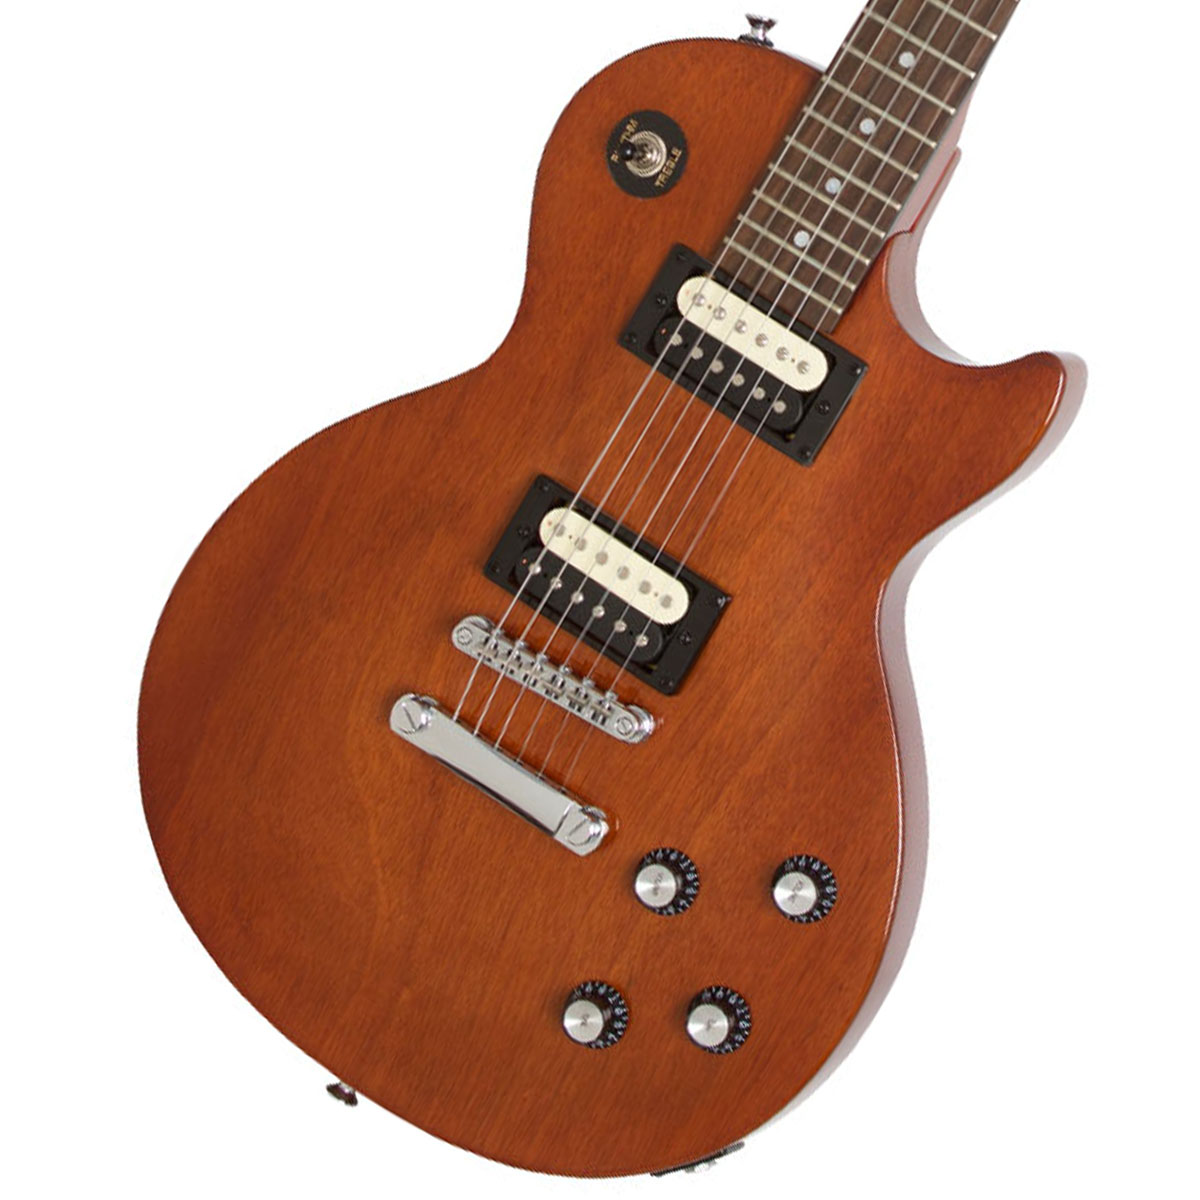 Epiphone / Les Paul Studio LT Walnut (WL) エピフォン